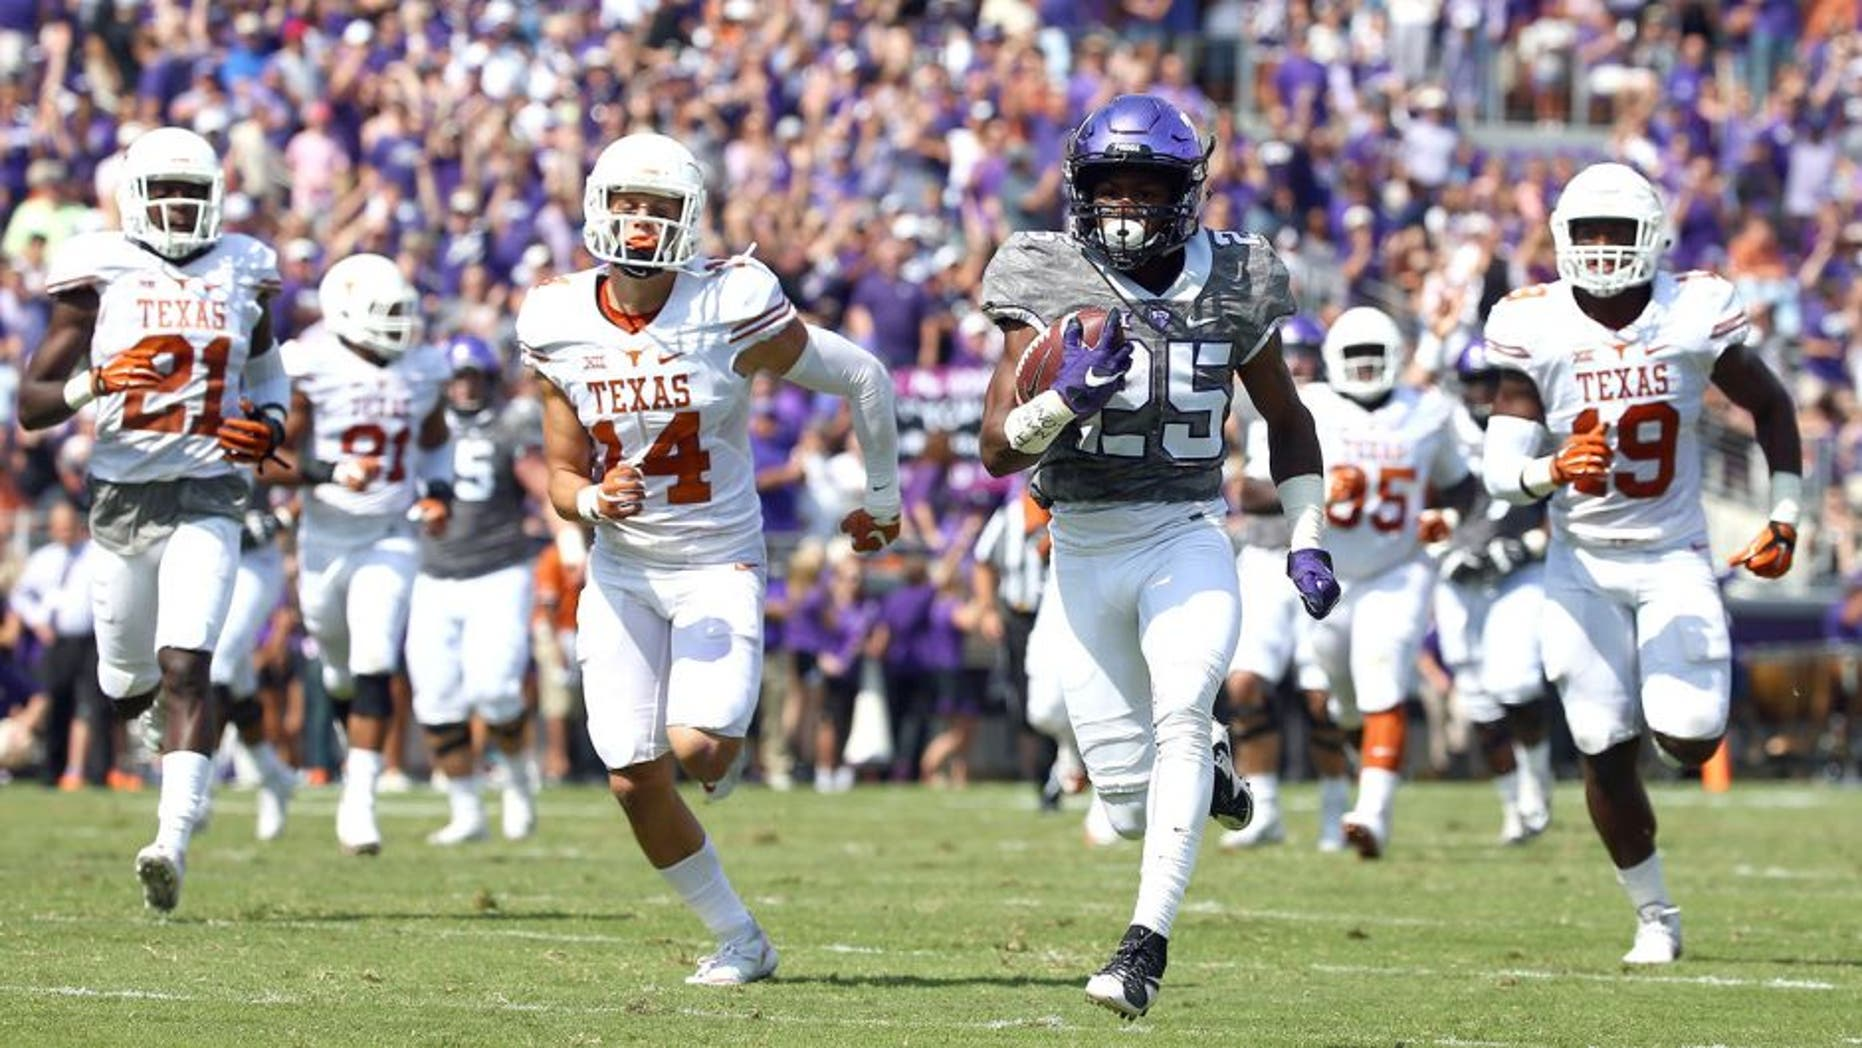 FORT WORTH, TX - OCTOBER 03: KaVontae Turpin #25 of the TCU Horned Frogs carries the ball for a touchdown against Duke Thomas #21 of the Texas Longhorns, Dylan Haines #14 of the Texas Longhorns, Peter Jinkens #19 of the Texas Longhorns in the second quarter at Amon G. Carter Stadium on October 3, 2015 in Fort Worth, Texas. (Photo by Tom Pennington/Getty Images)